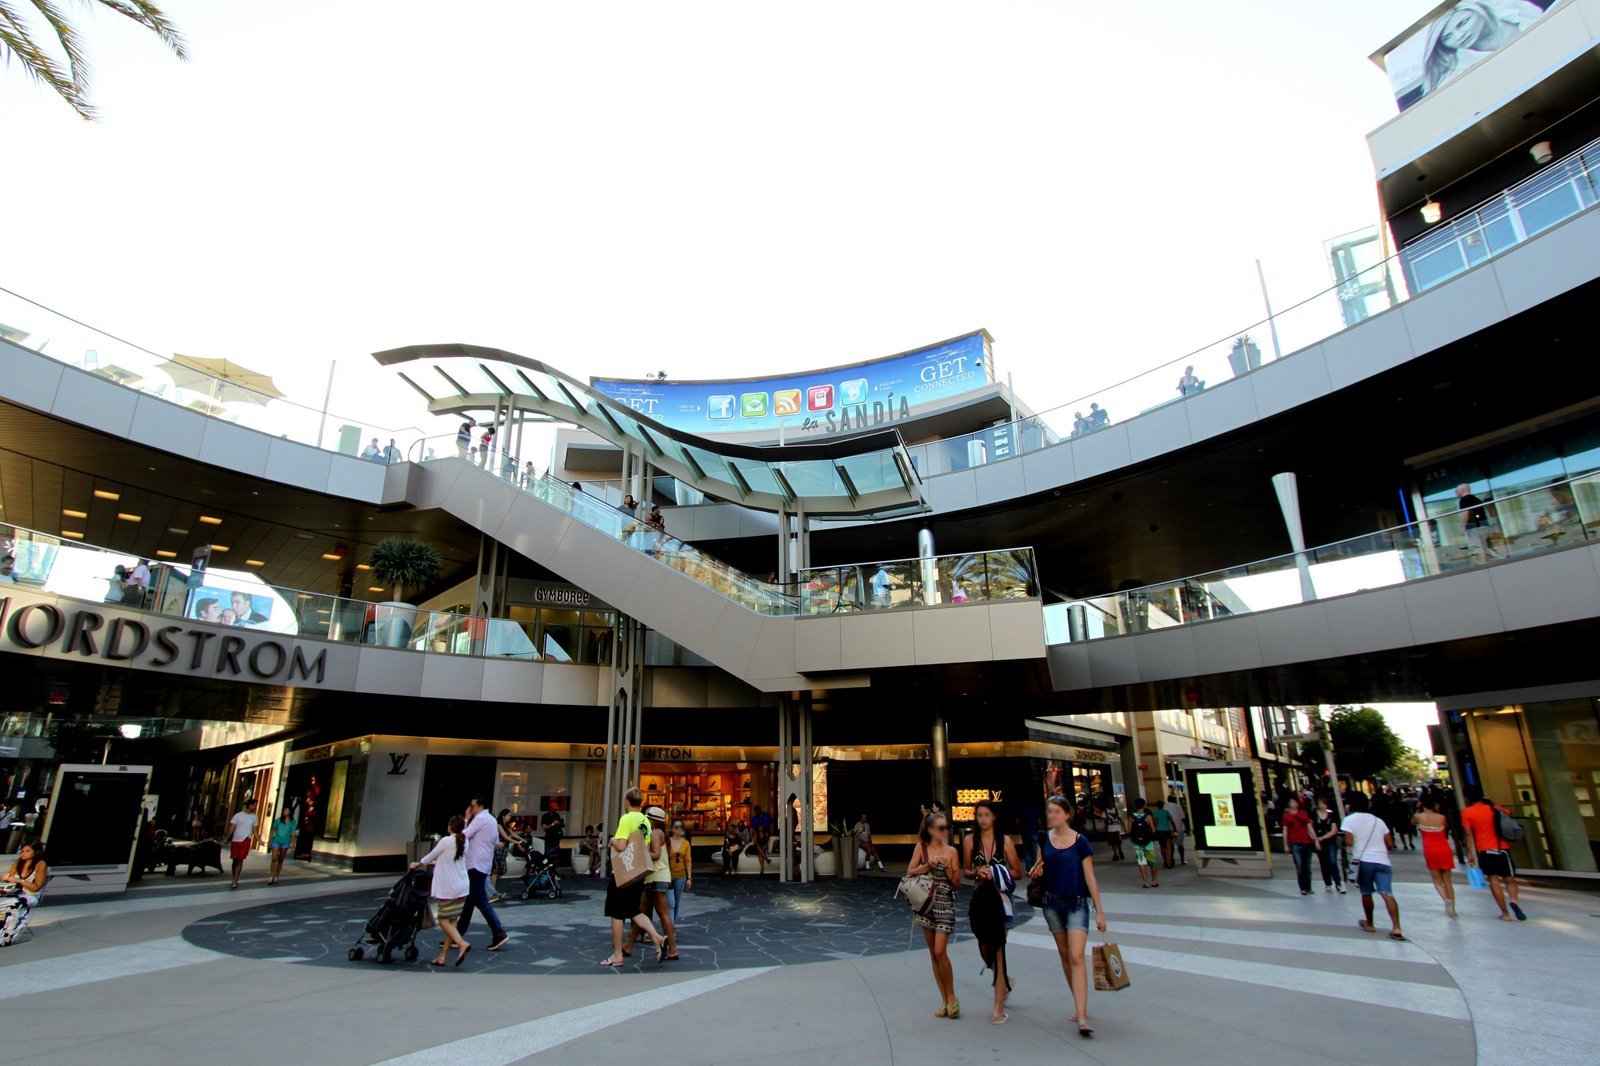 10 Best Shopping Malls in Los Angeles - Where to Shop 'til